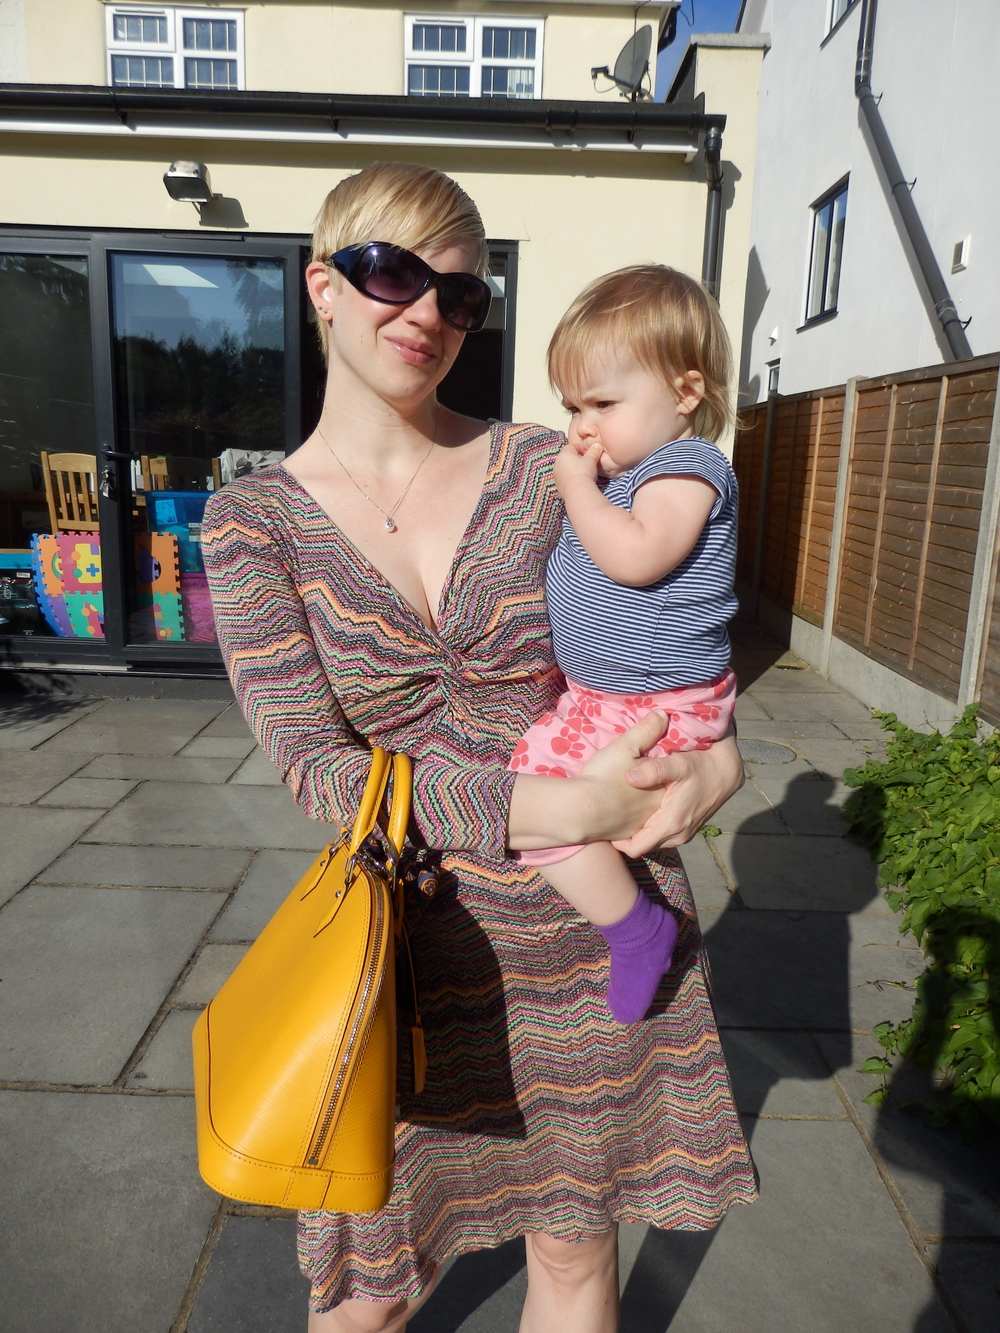 Bug wanted in on the piccy action - she's in half jammies / half clothes :)